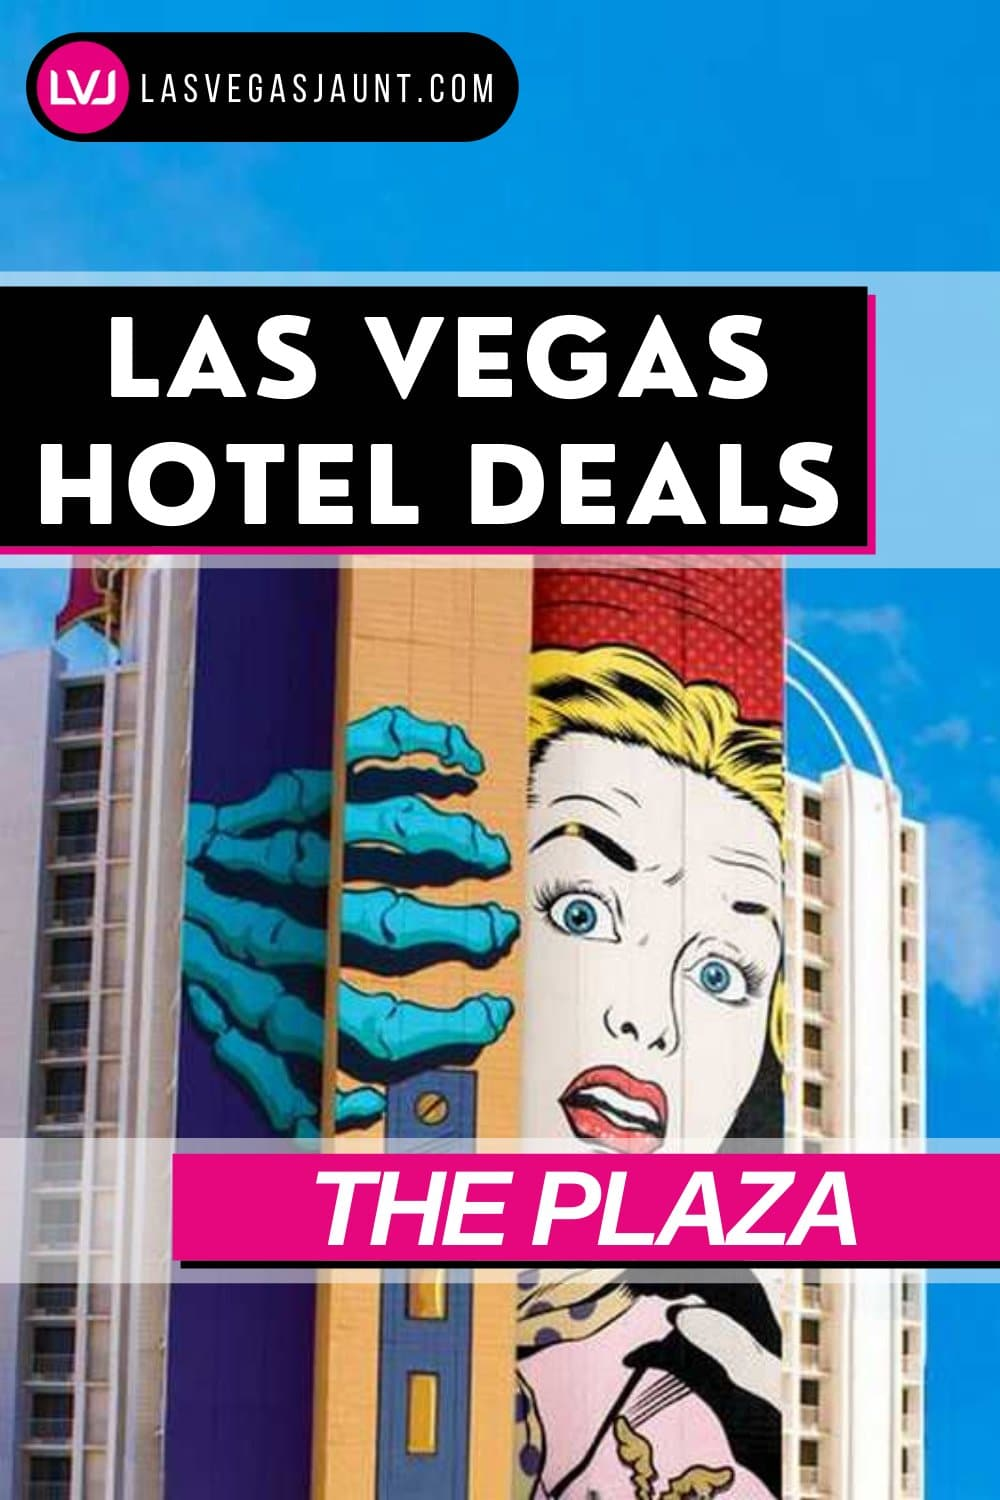 The Plaza Hotel Las Vegas Deals Promo Codes & Discounts